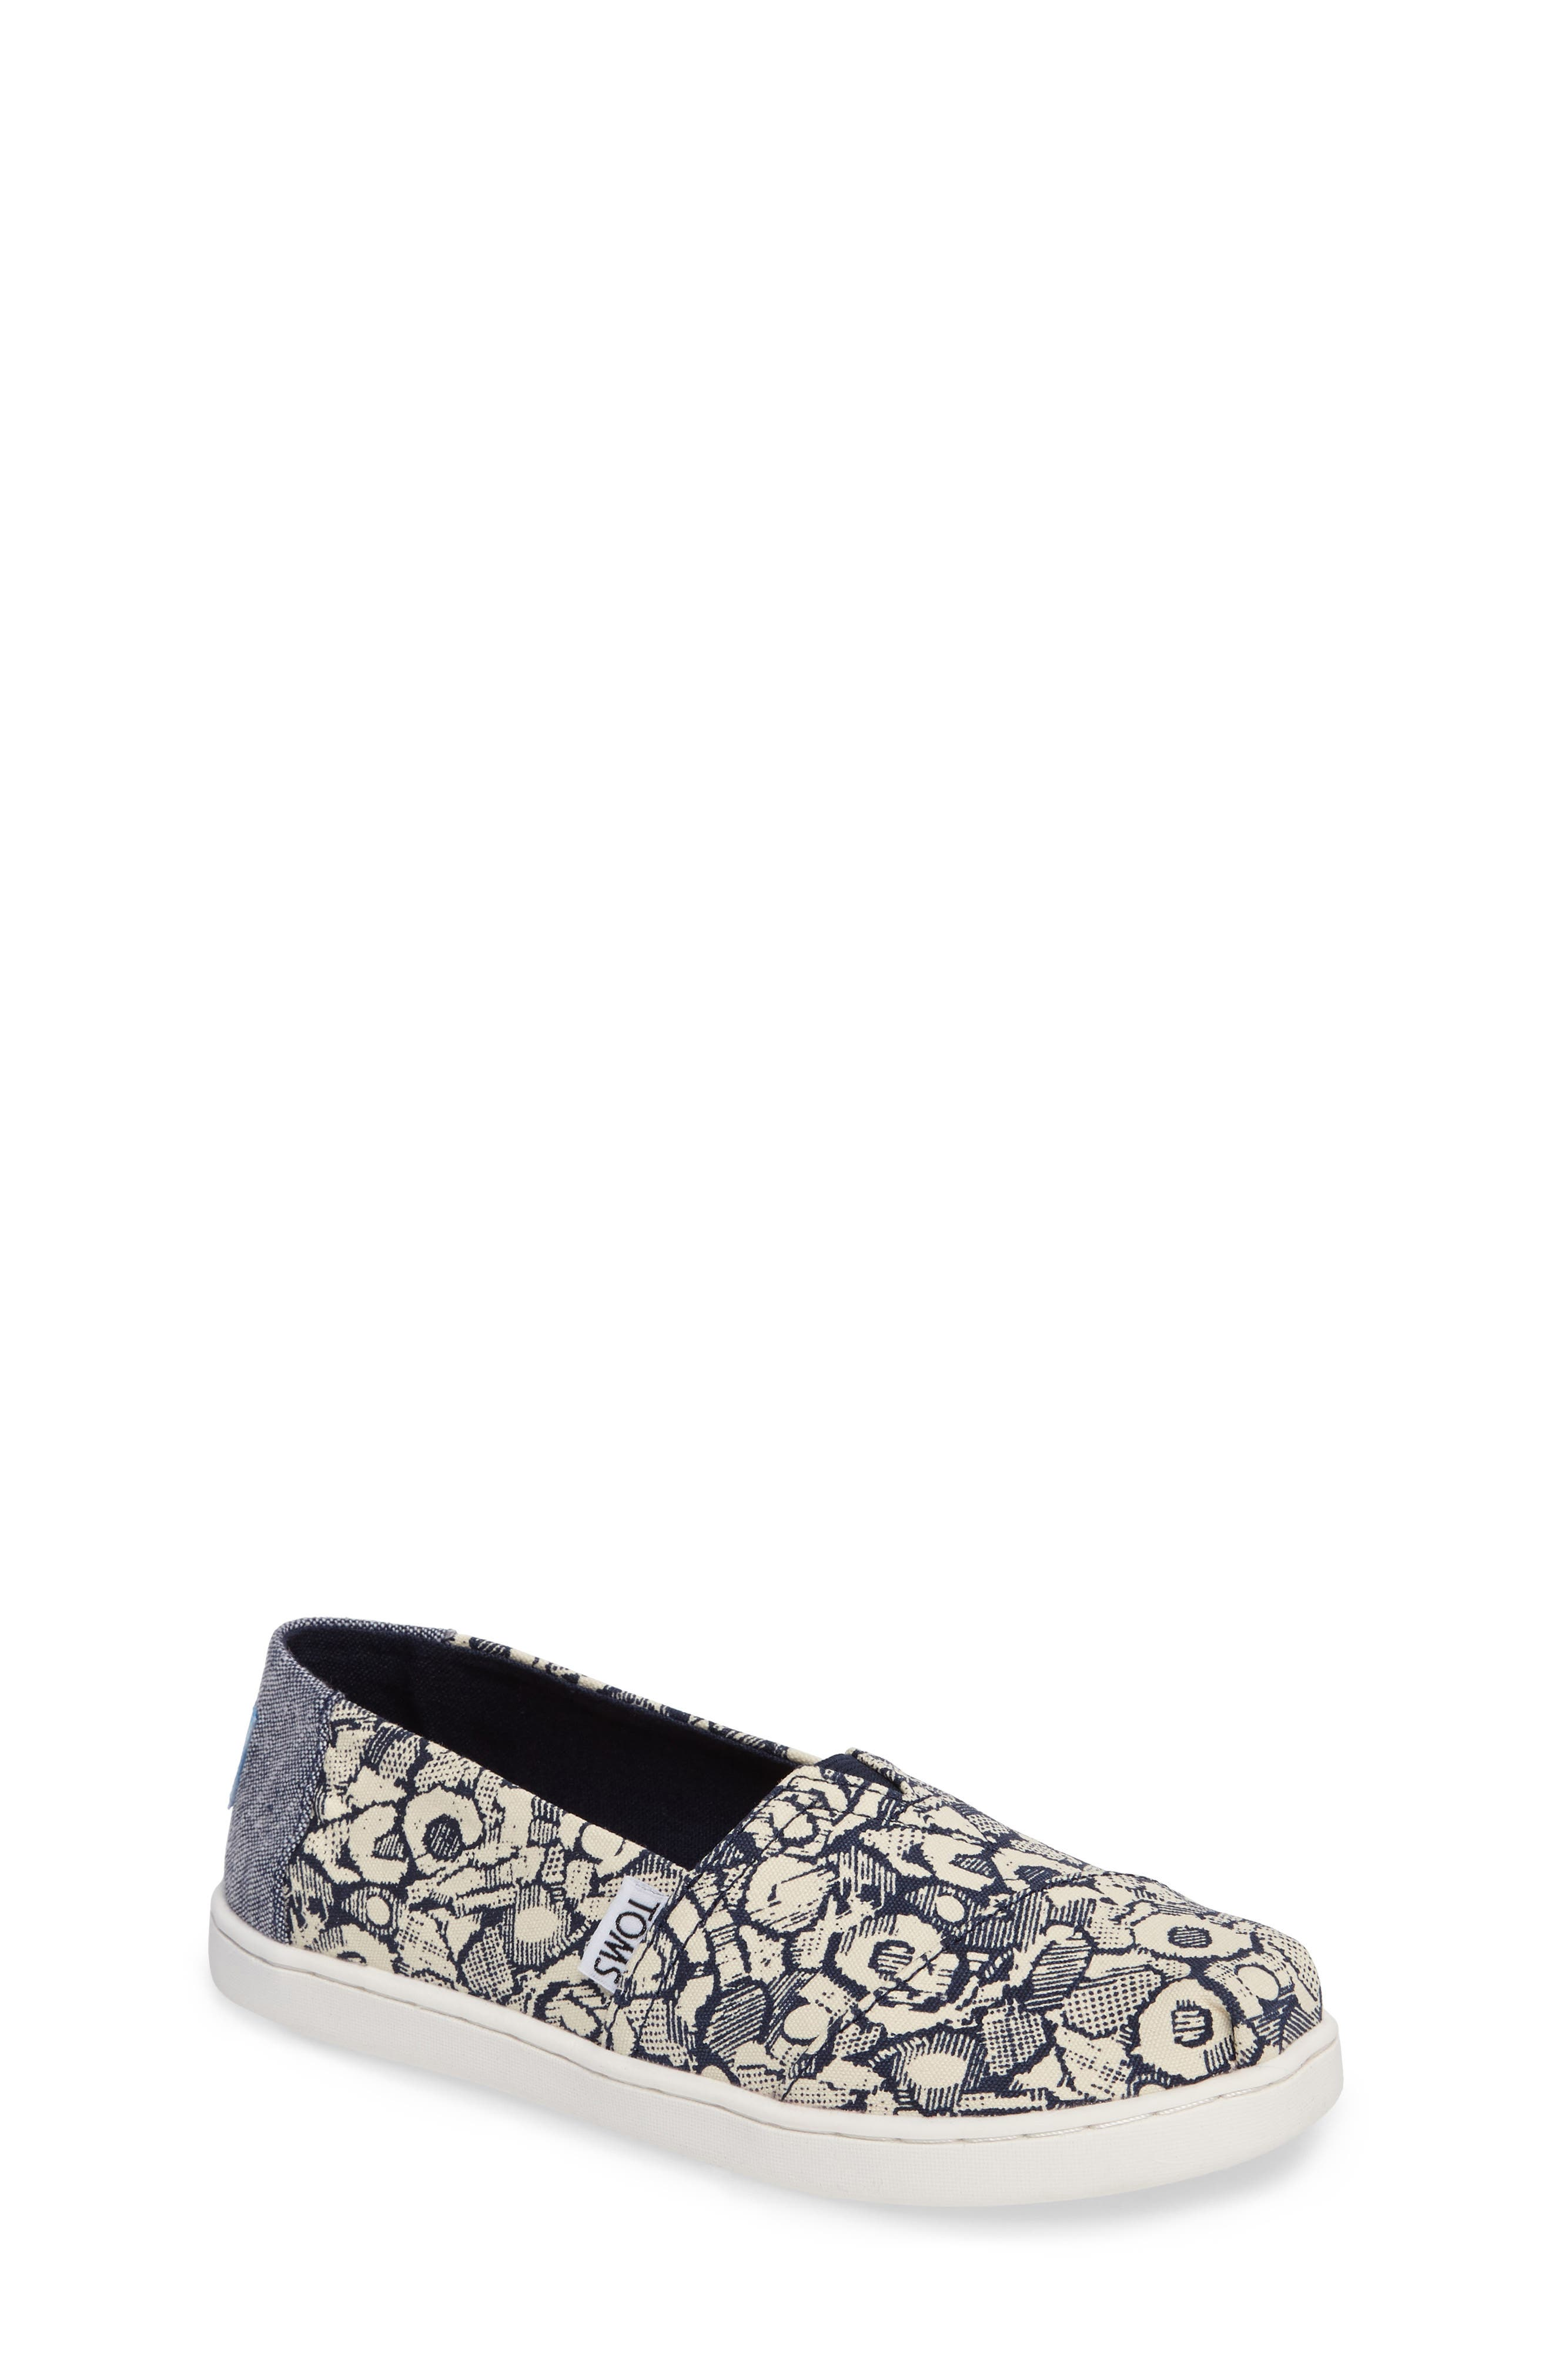 Main Image - TOMS Classic Floral Camo Slip-On (Toddler, Little Kid & Big Kid)